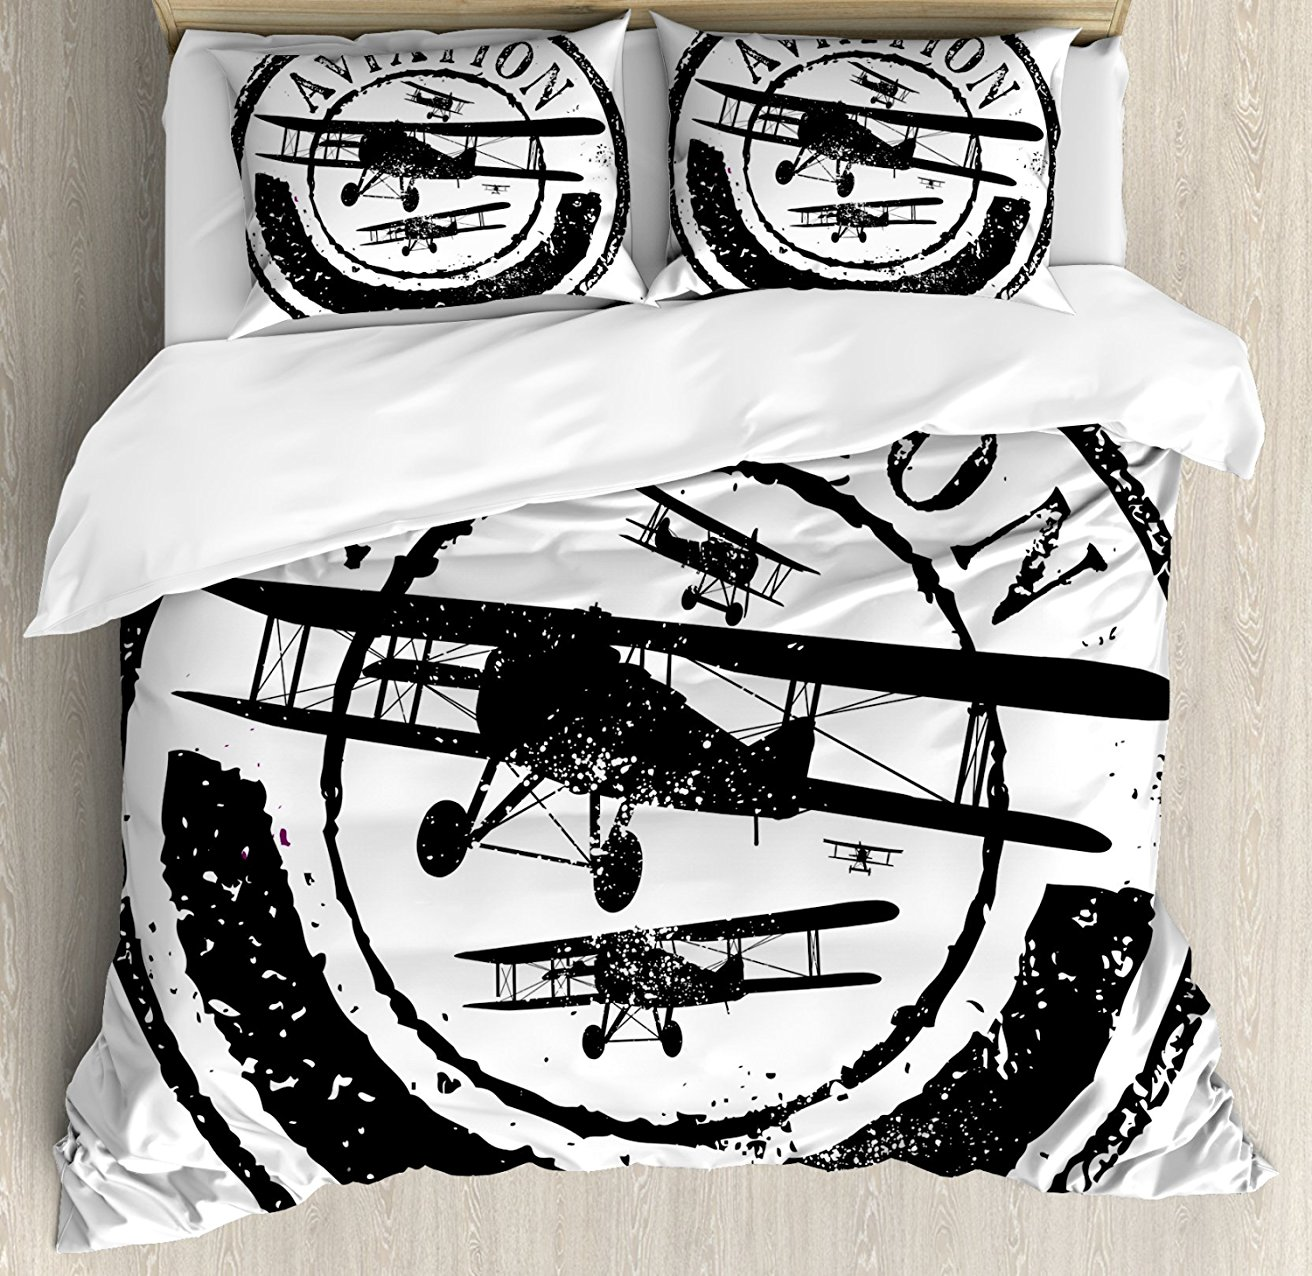 Vintage Airplane Decor Duvet Cover Set Grunge Stamp Design with Word Aviation and Airplane Silhouettes Decor Bedding Set